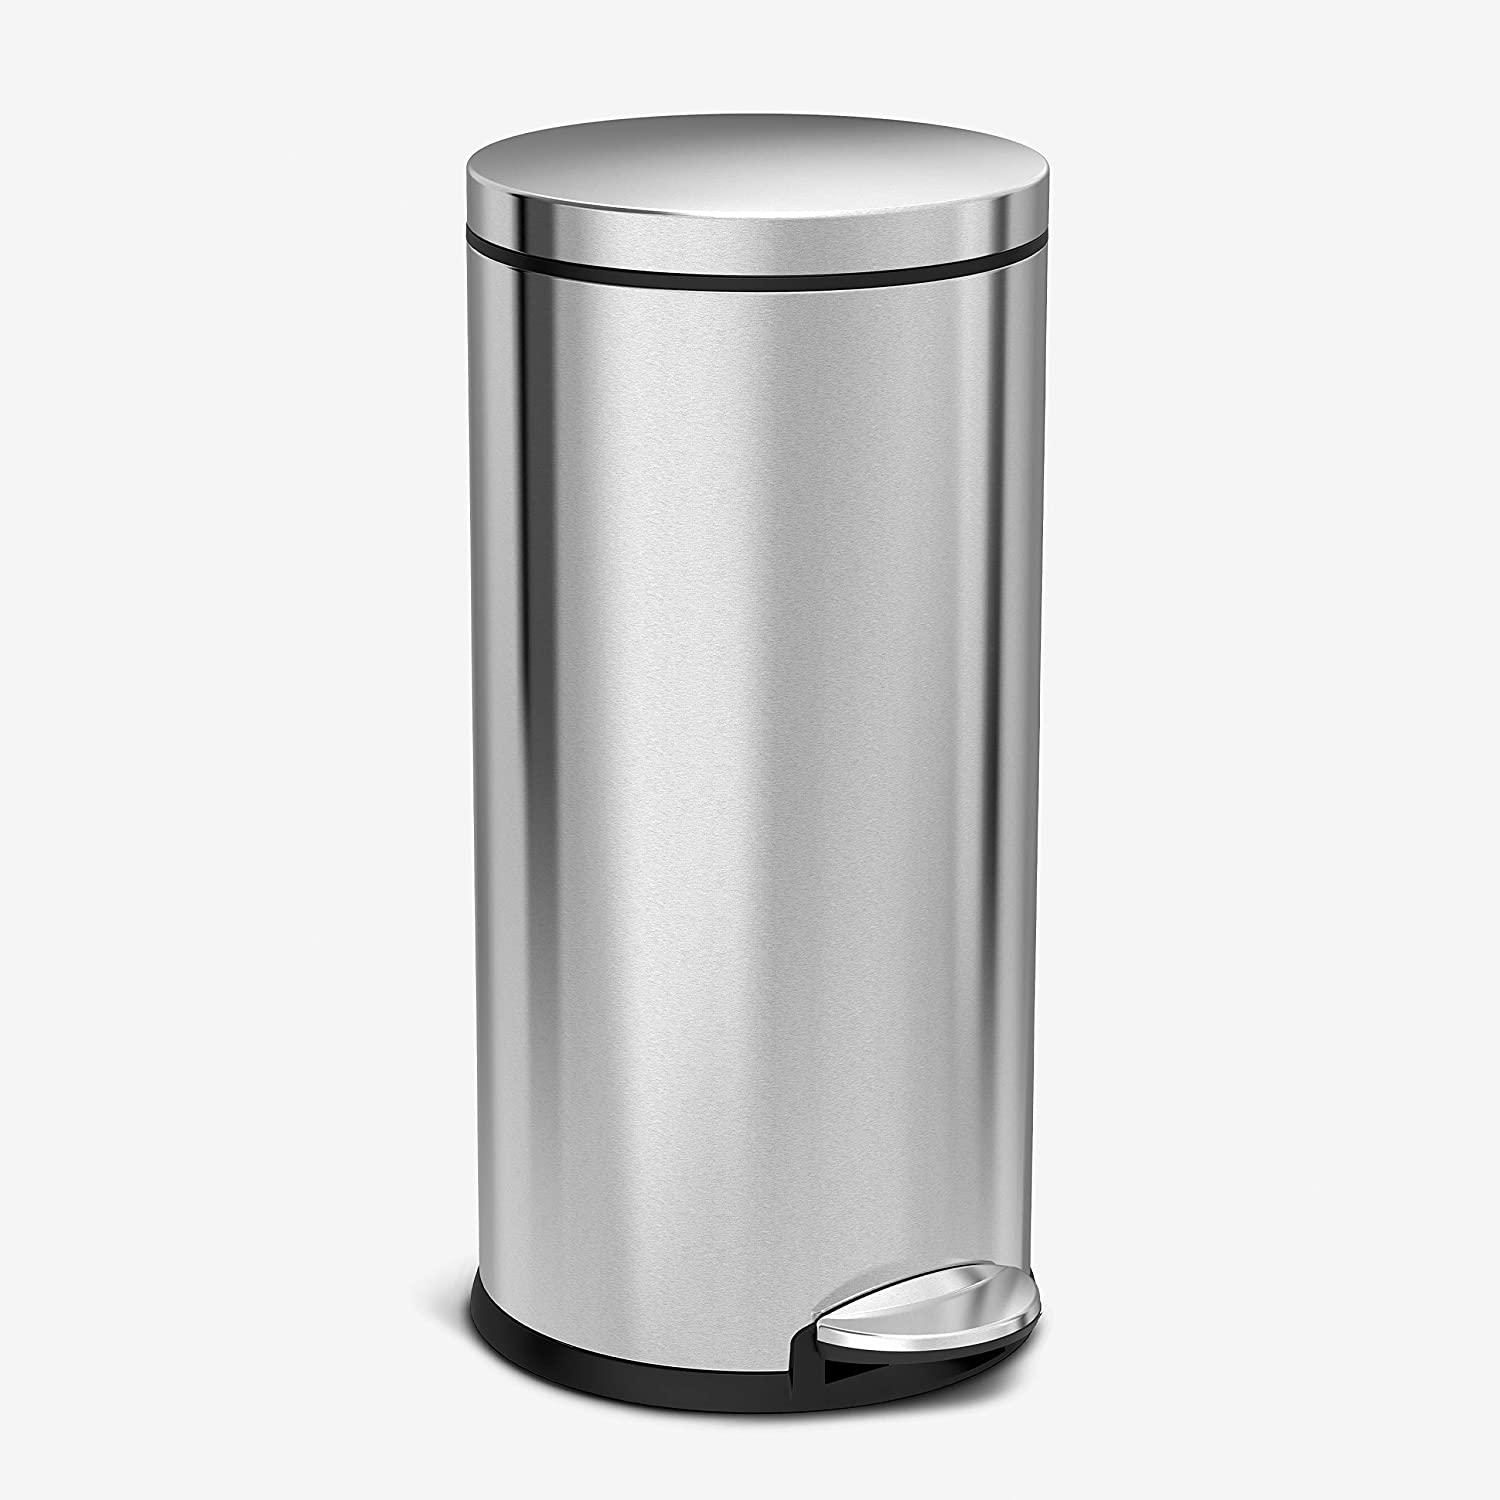 simplehuman 30 Liter 8 Gallon Round Step Can Super popular specialty store Brushed St Trash All stores are sold